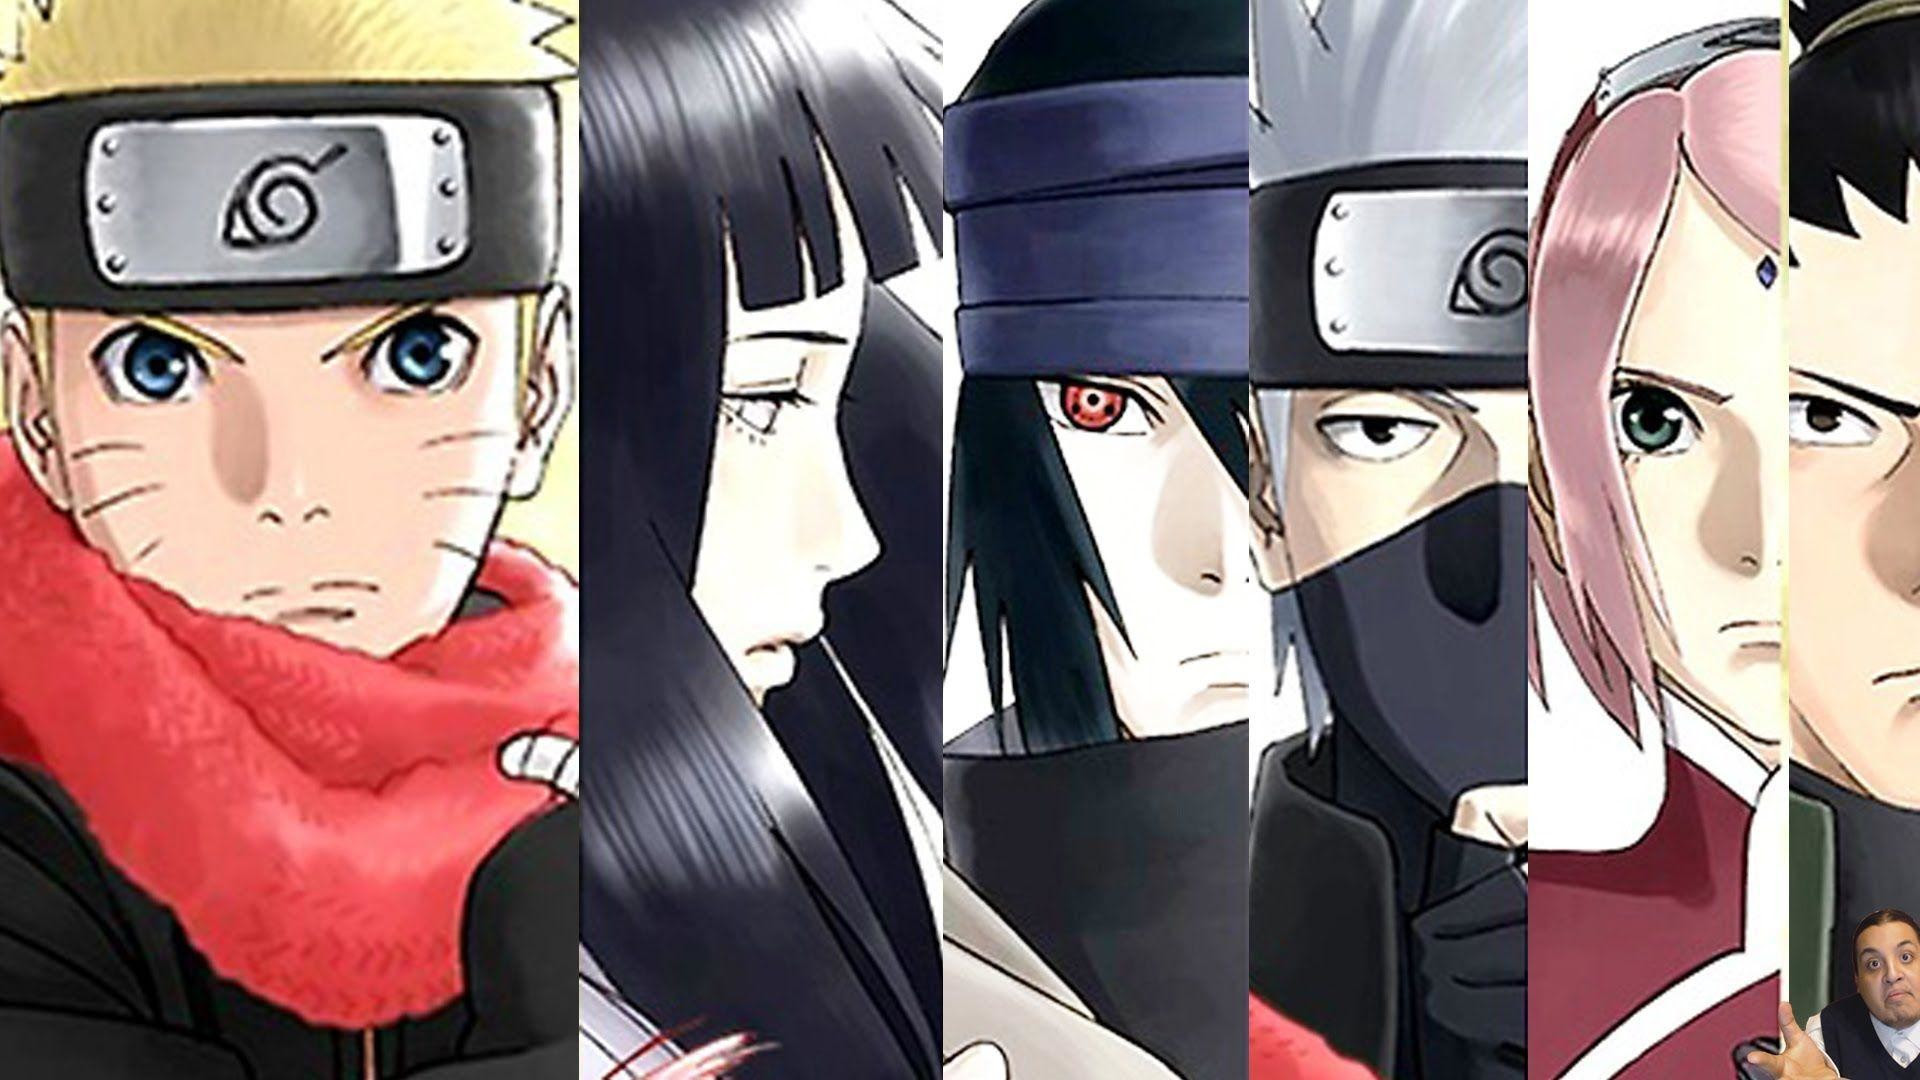 The Last Naruto The Movie Wallpapers 69 Images